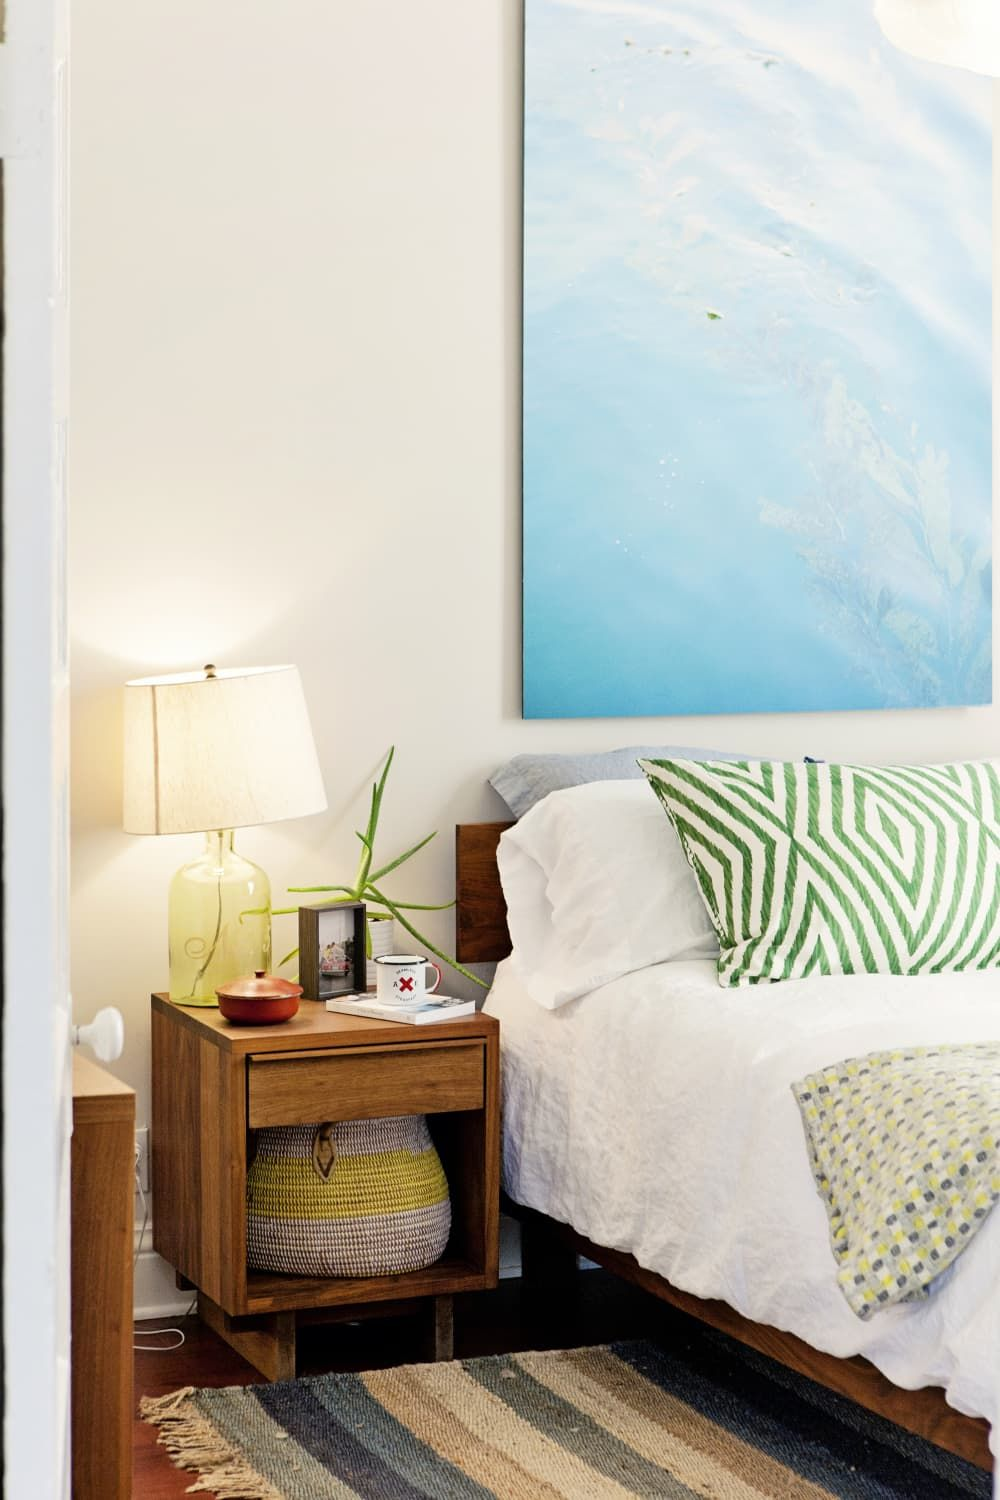 Large Scale Art 4 BudgetFriendly Ways to Fill the Whole